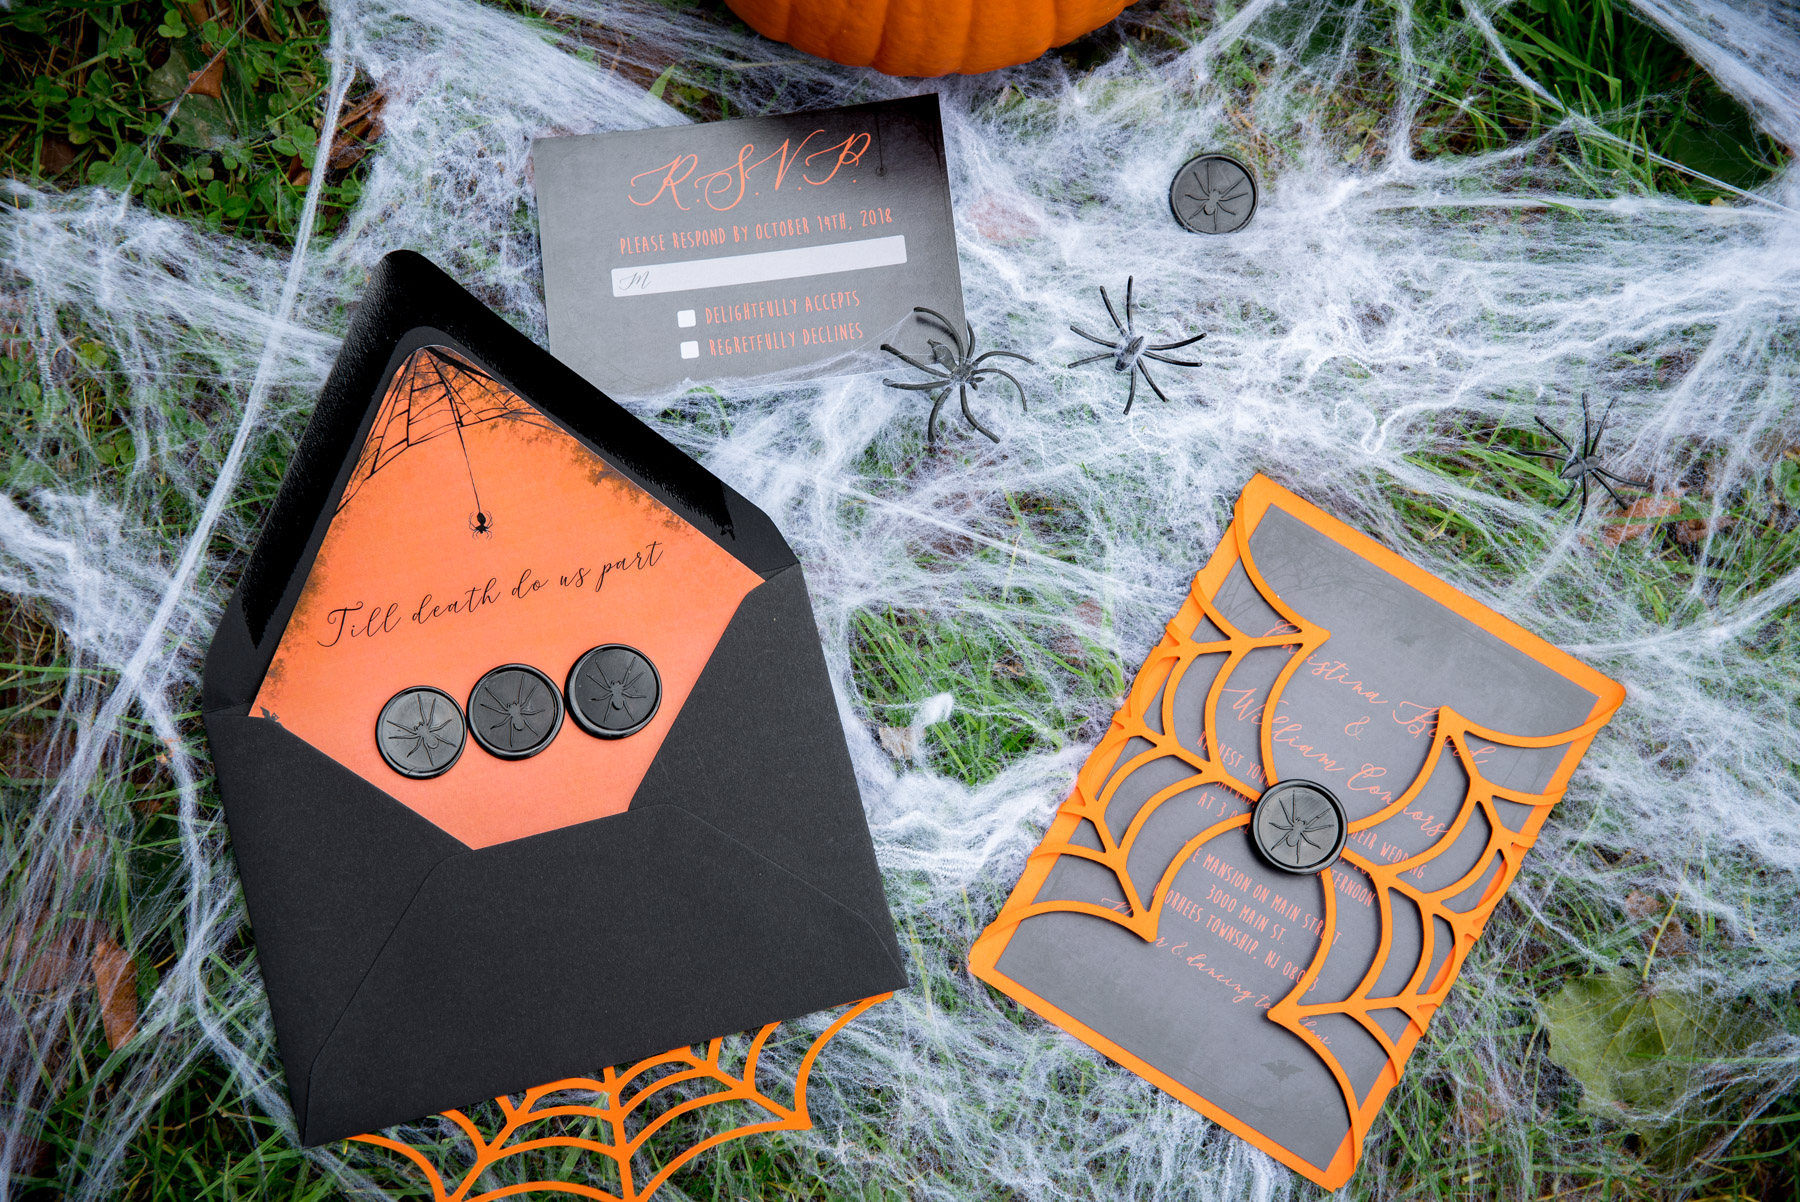 Halloween theme wedding with spider web decorations